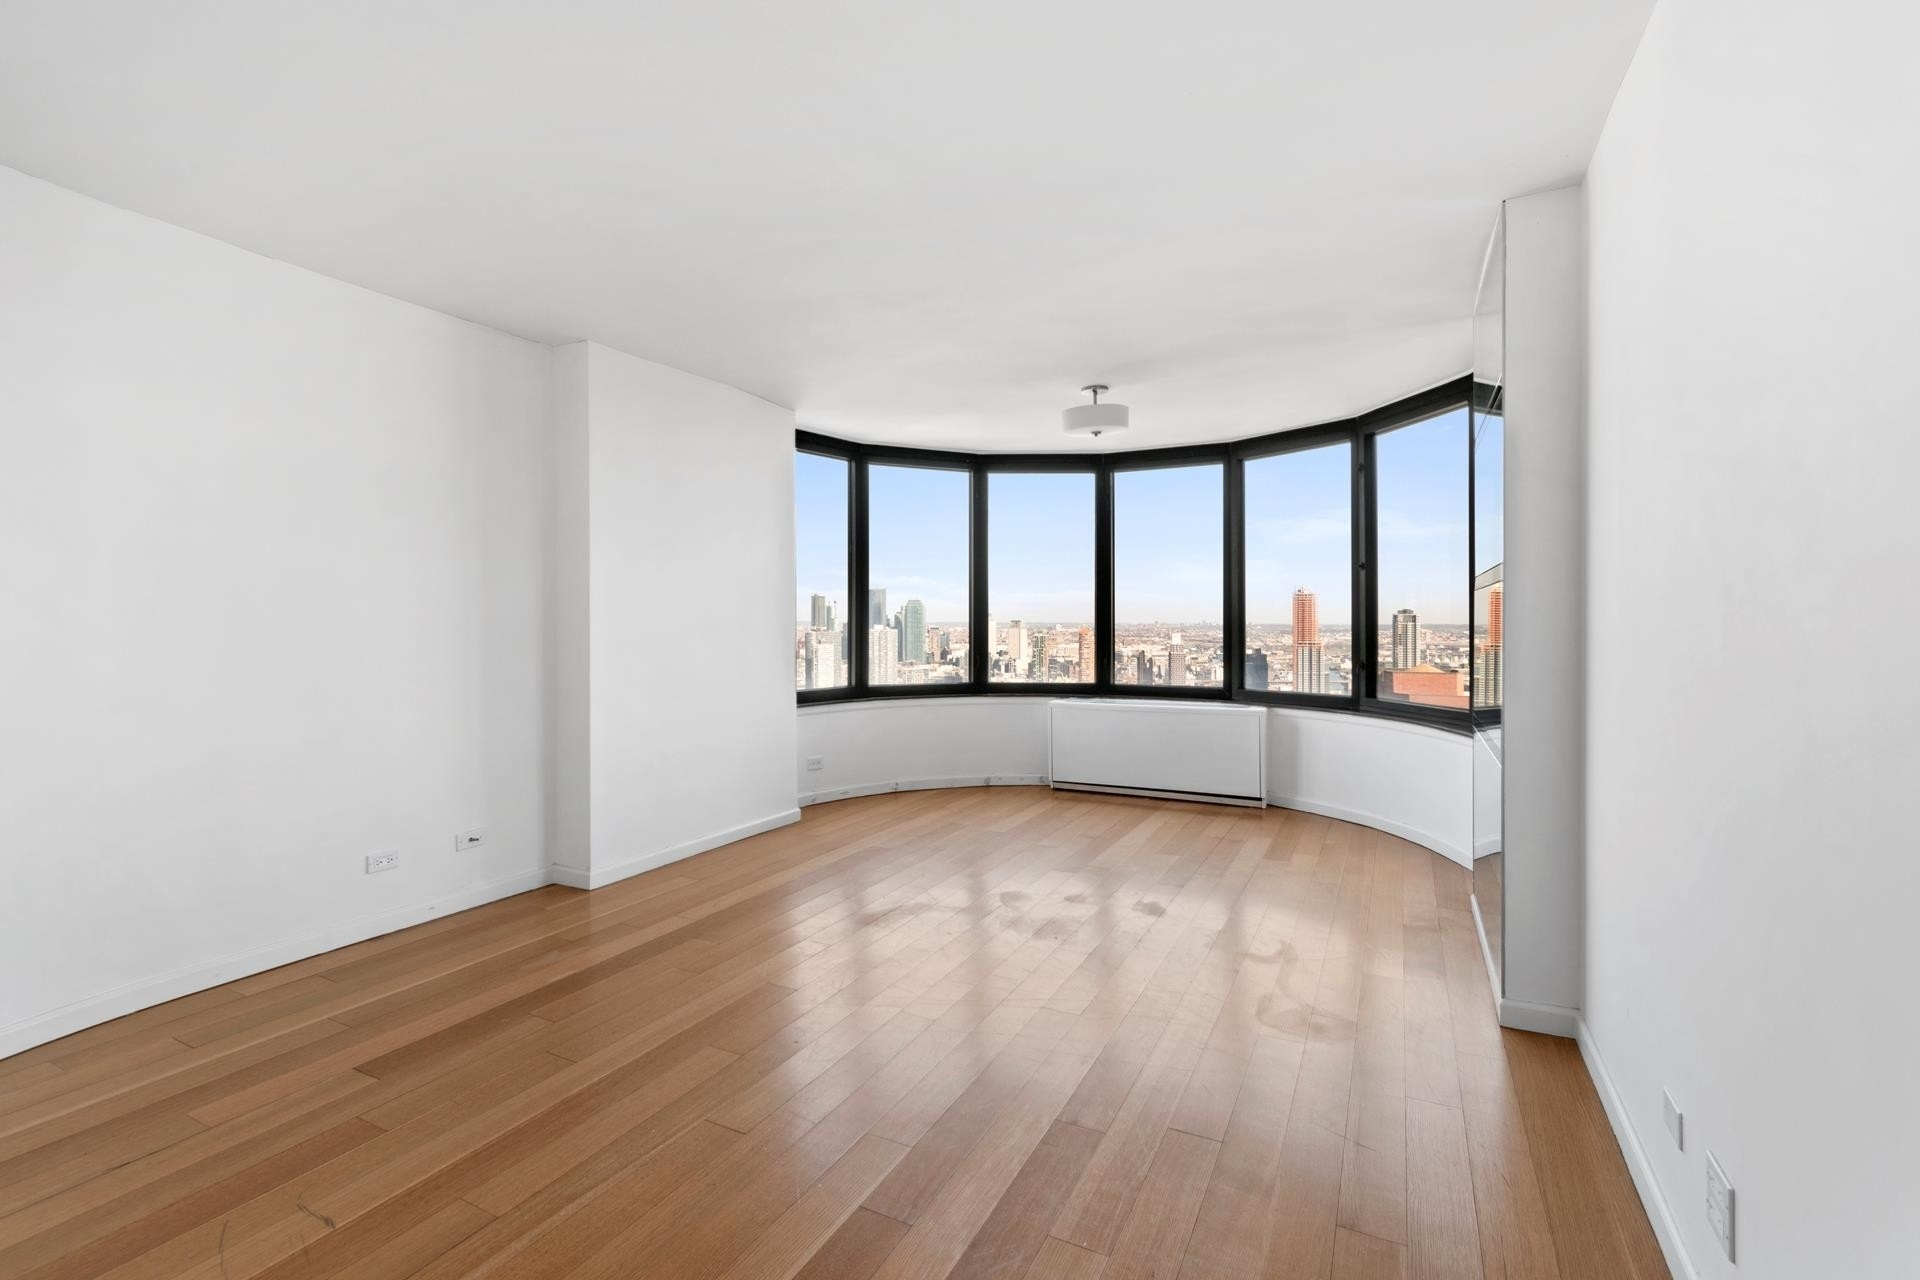 Condominium for Sale at The Corinthian, 330 E 38TH ST , 52K Murray Hill, New York, NY 10016